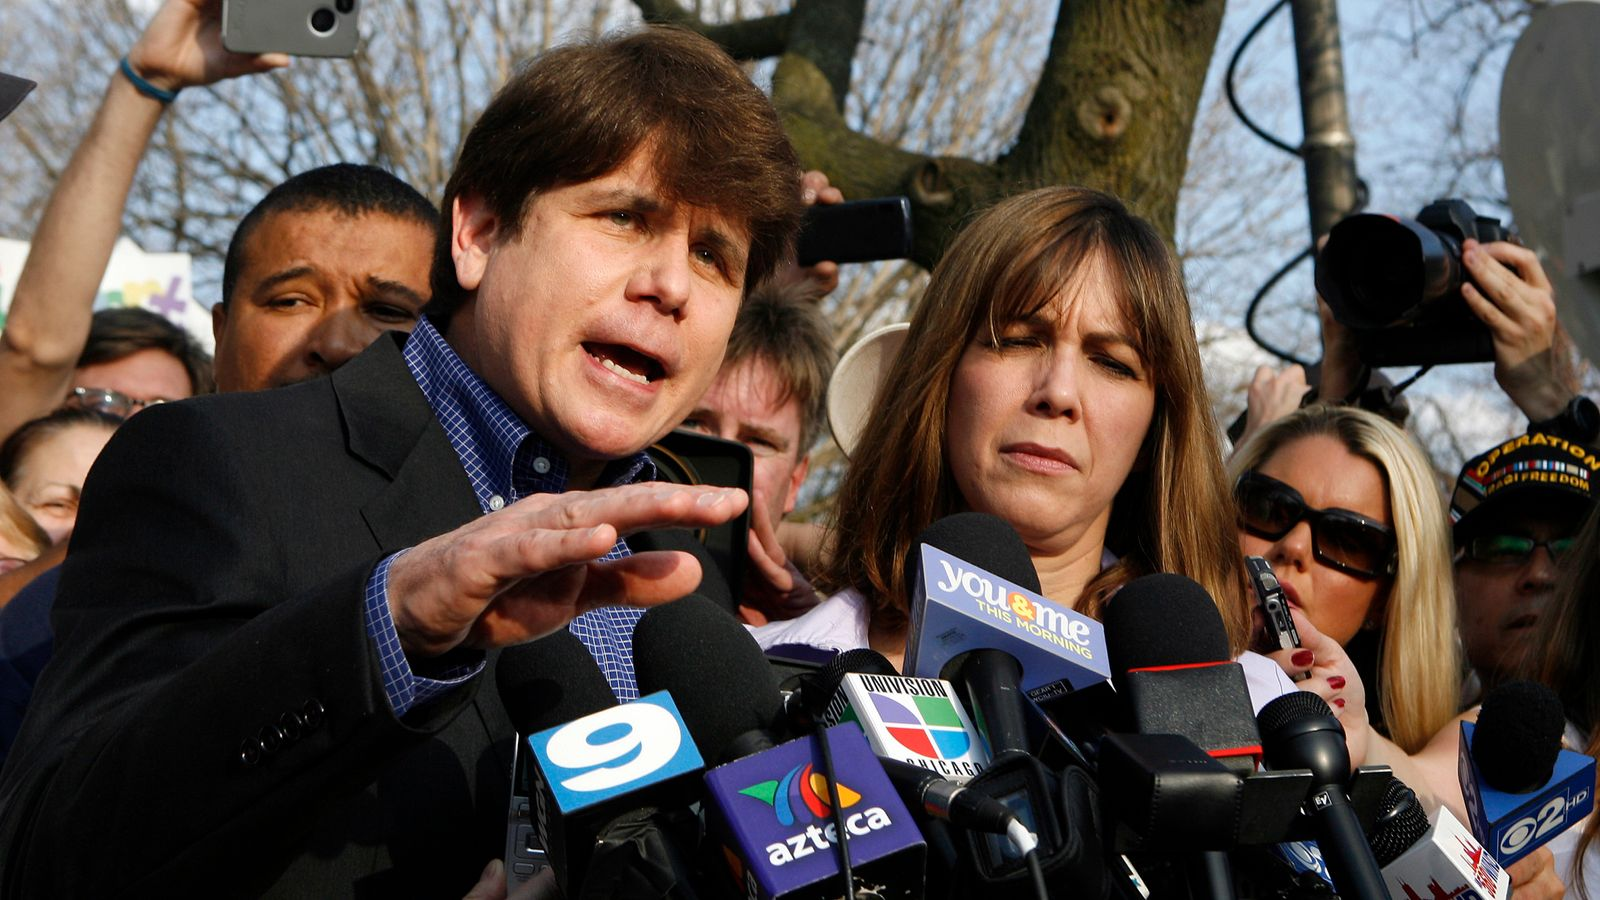 Rod Blagojevich: Trump commutes sentence of ex-governor who tried to sell Obama's Senate seat